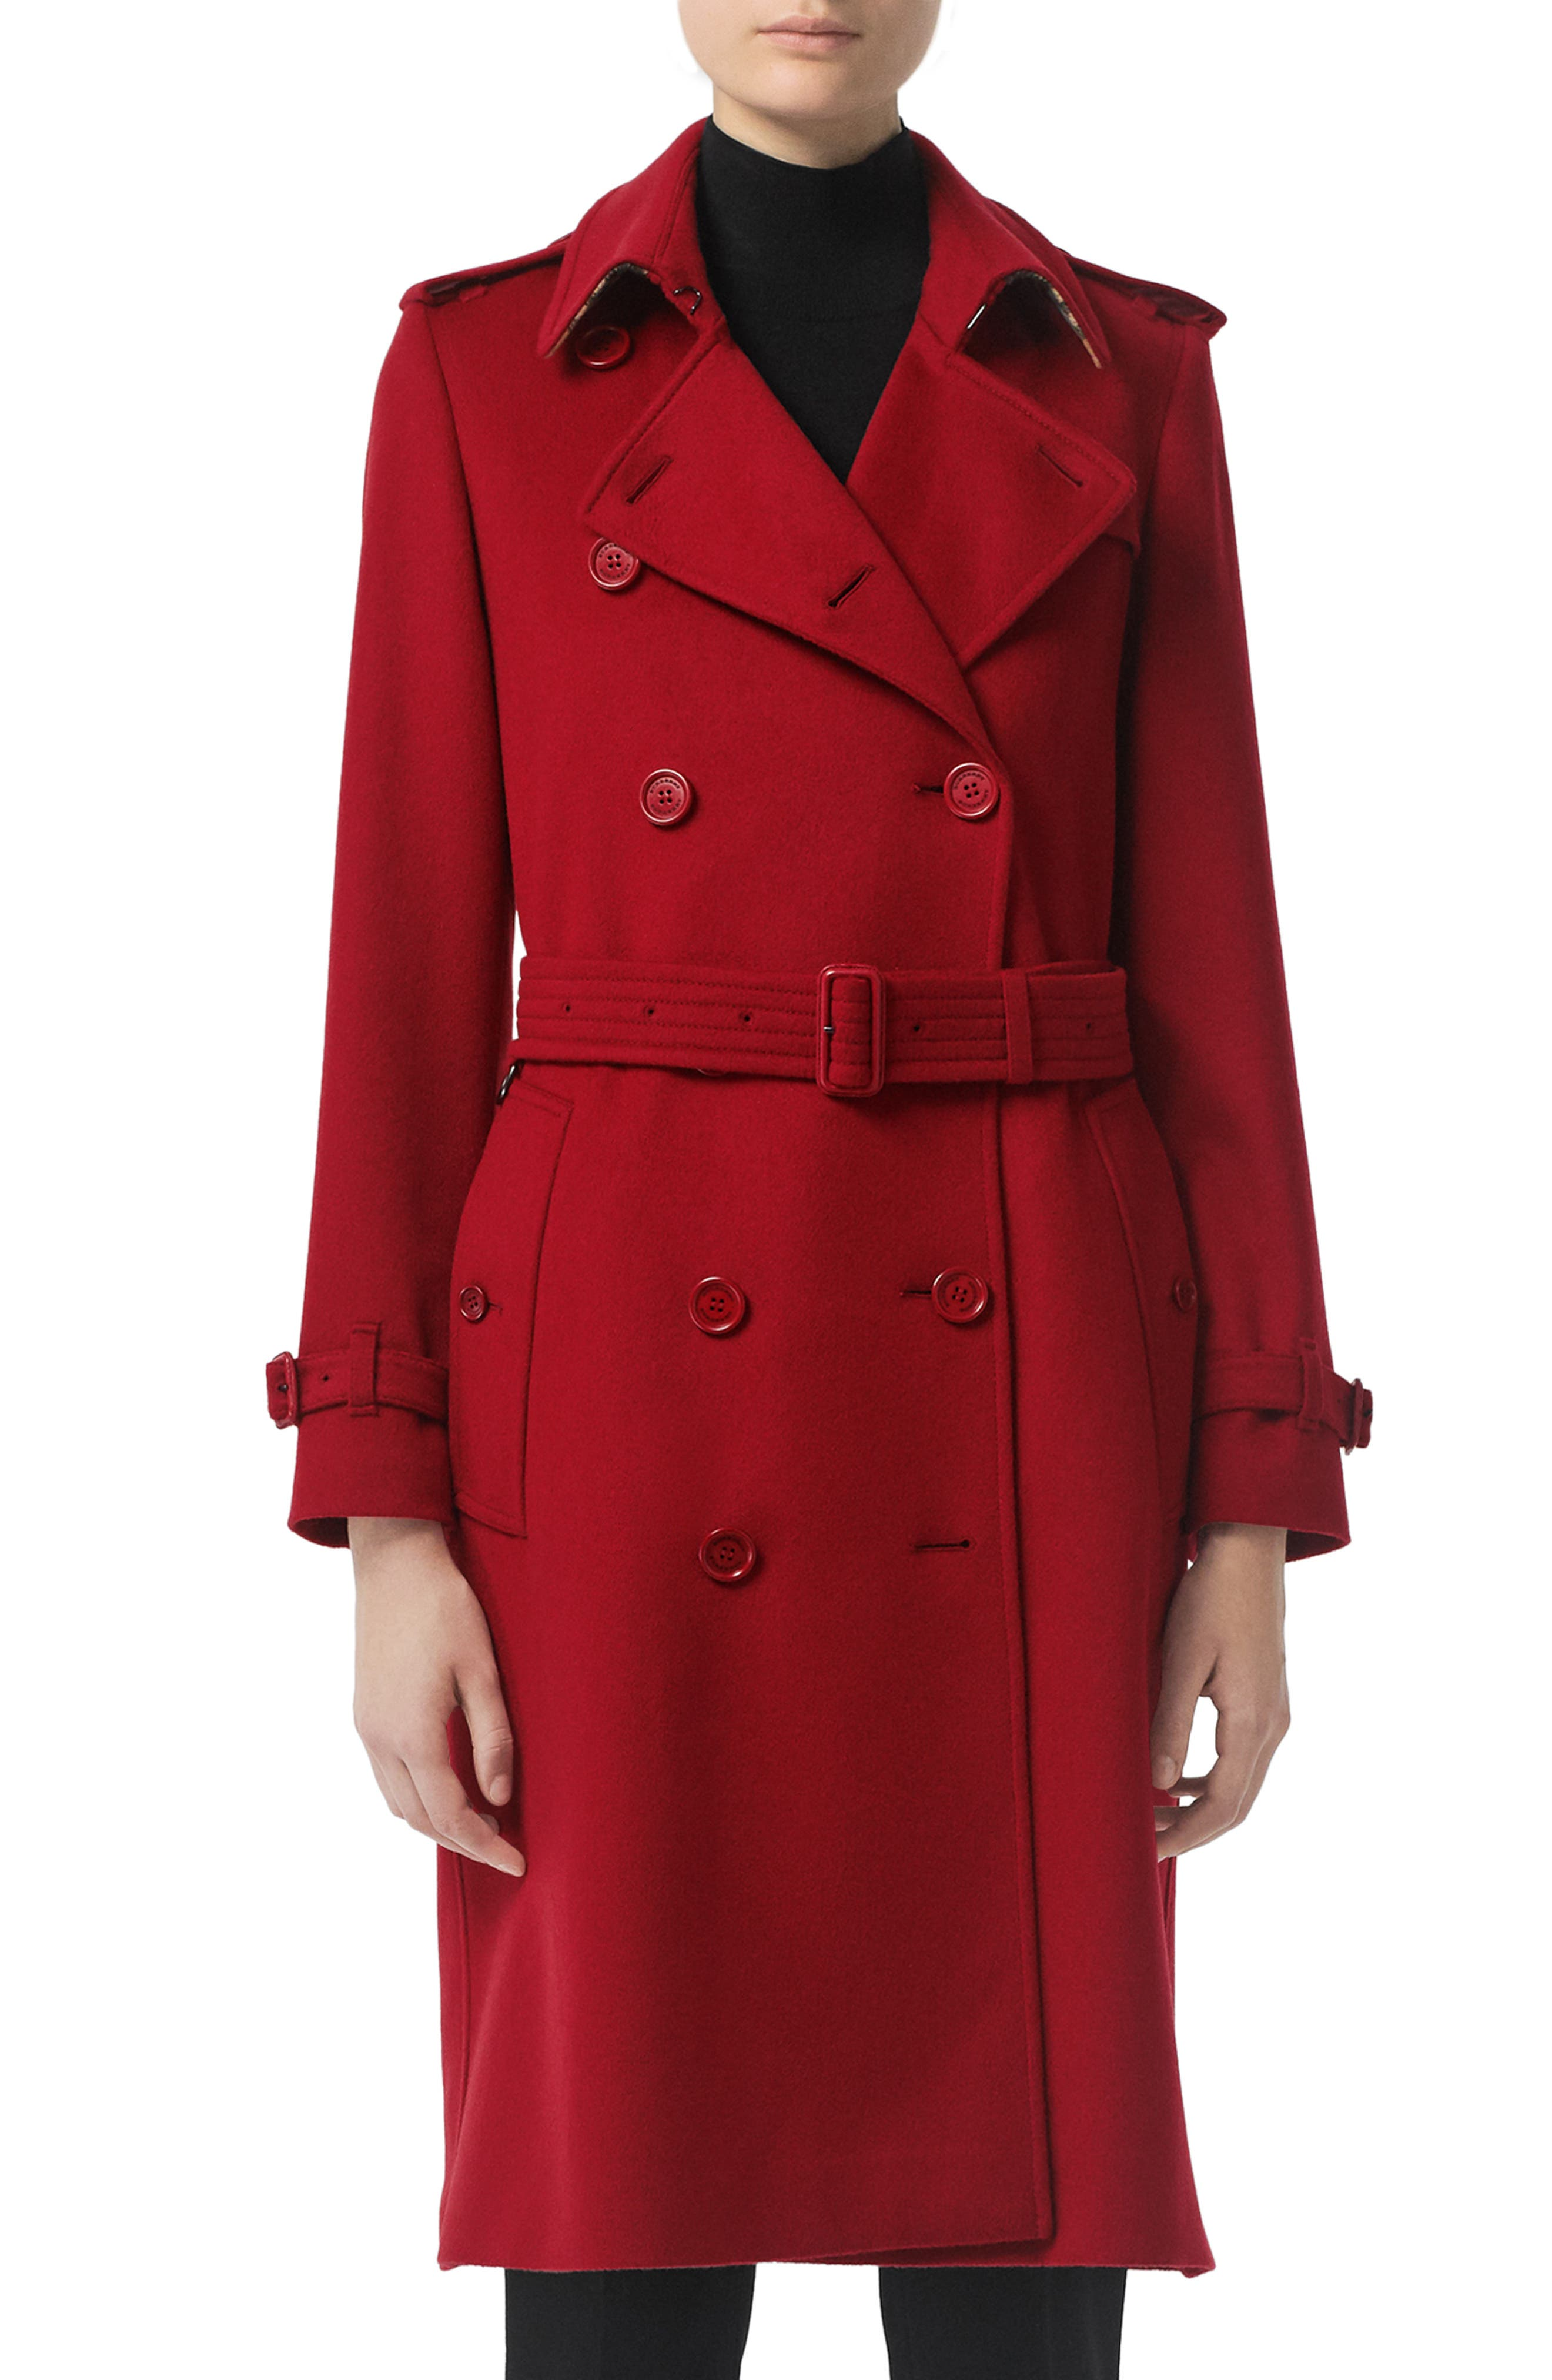 BURBERRY, Kensington Cashmere Trench Coat, Main thumbnail 1, color, PARADE RED